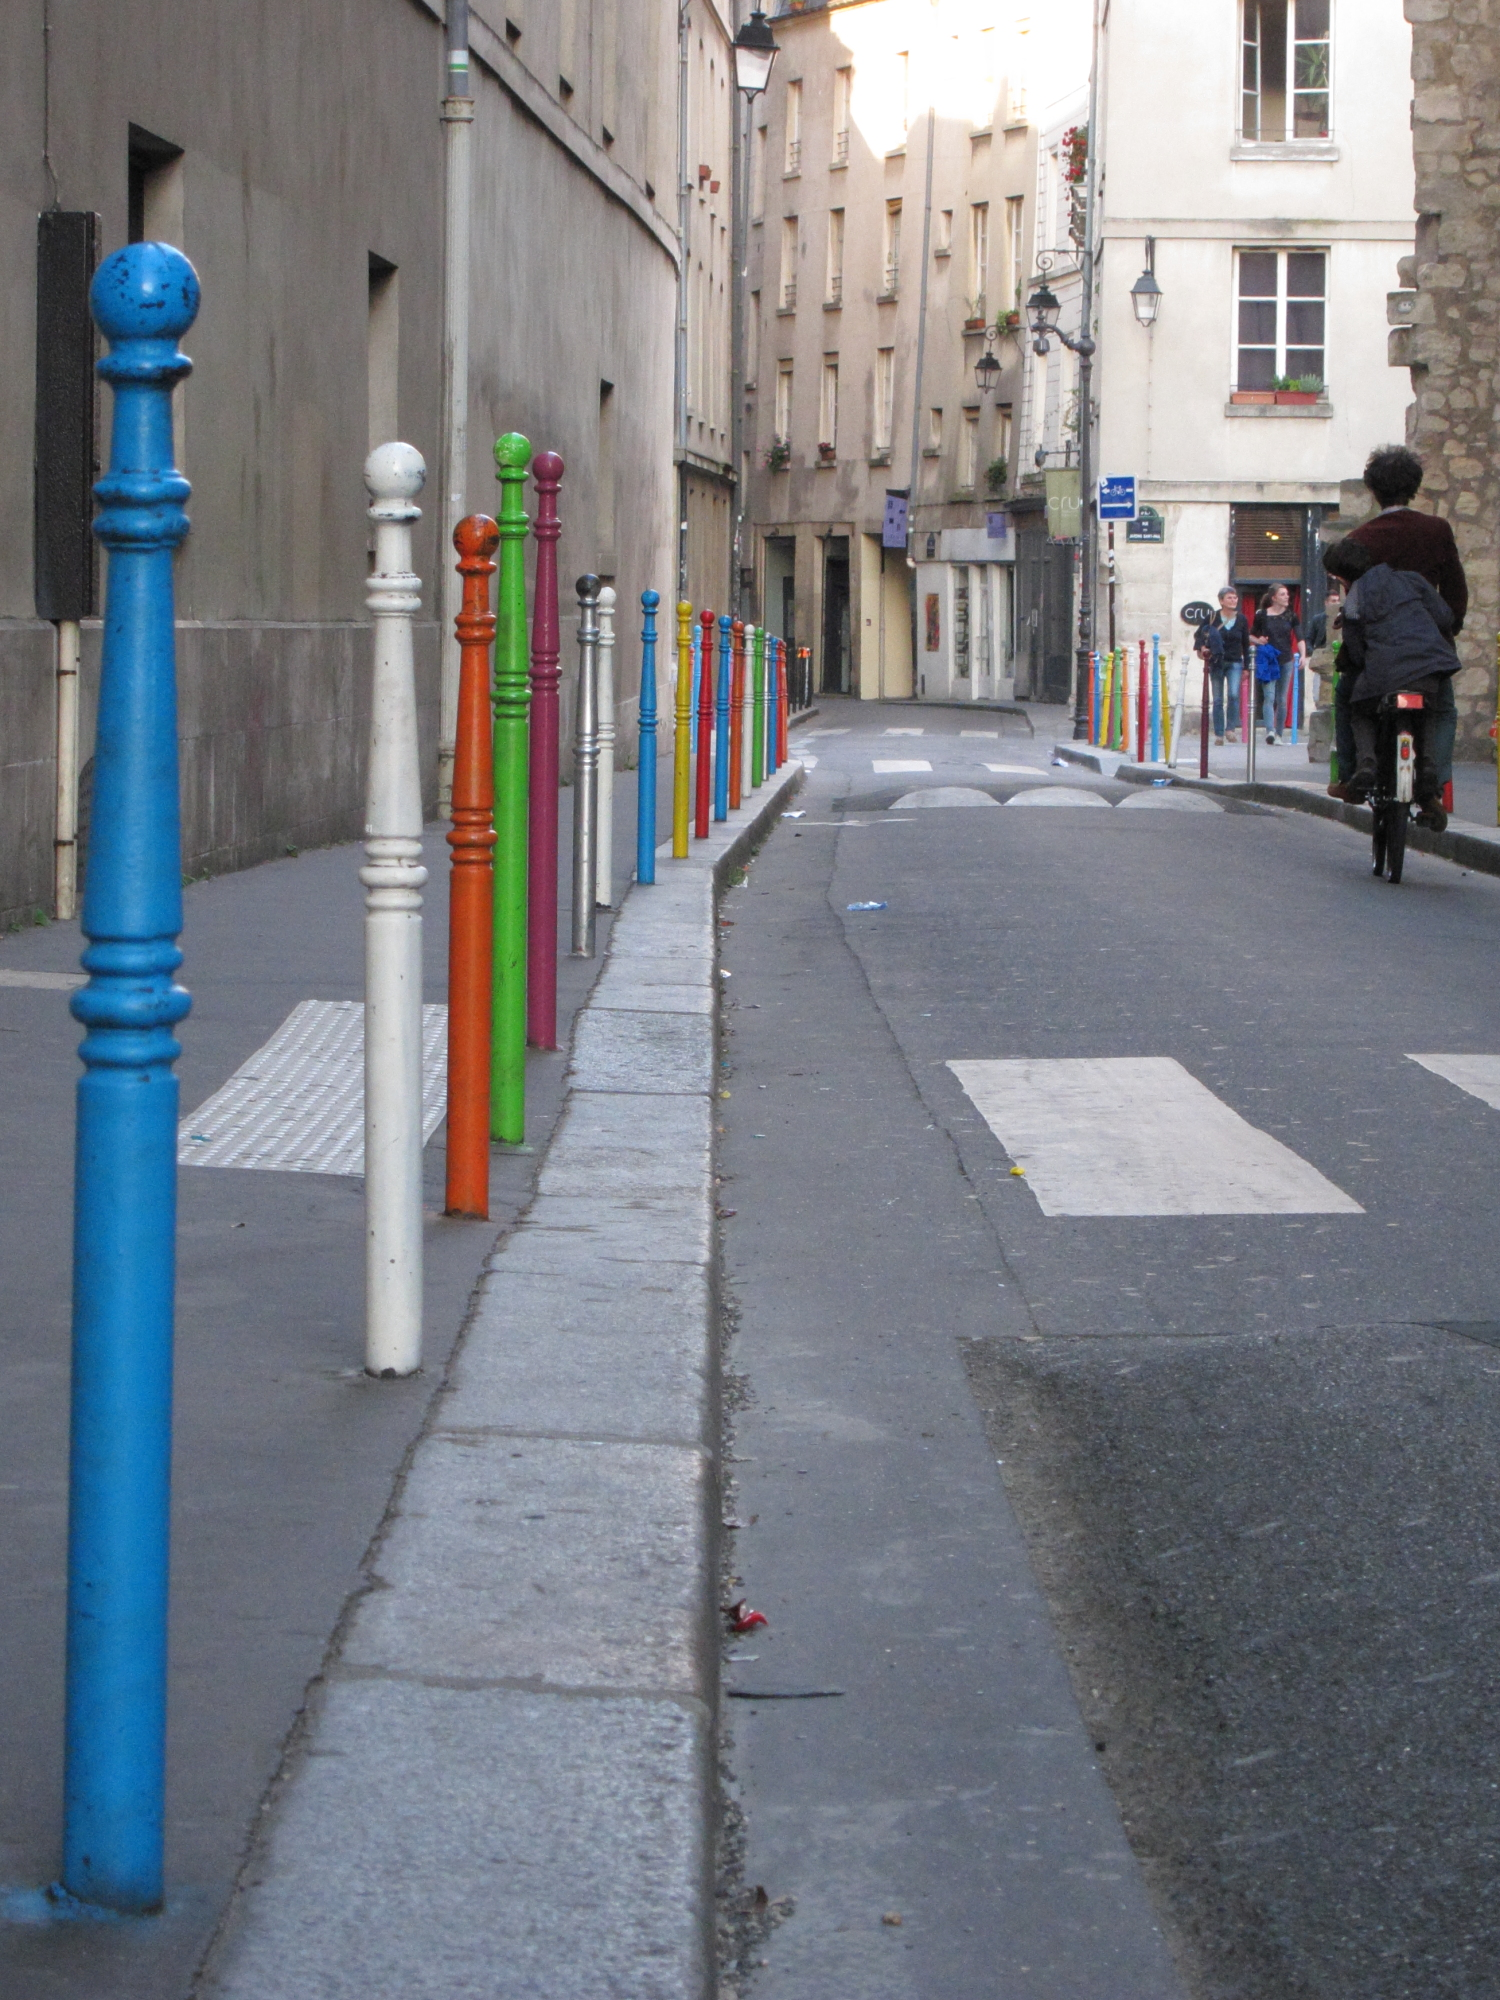 Festive pedestrian posts in Saint-Paul. The stonework at right is one of the last remnants of the 12th century city wall of Philippe-Auguste.